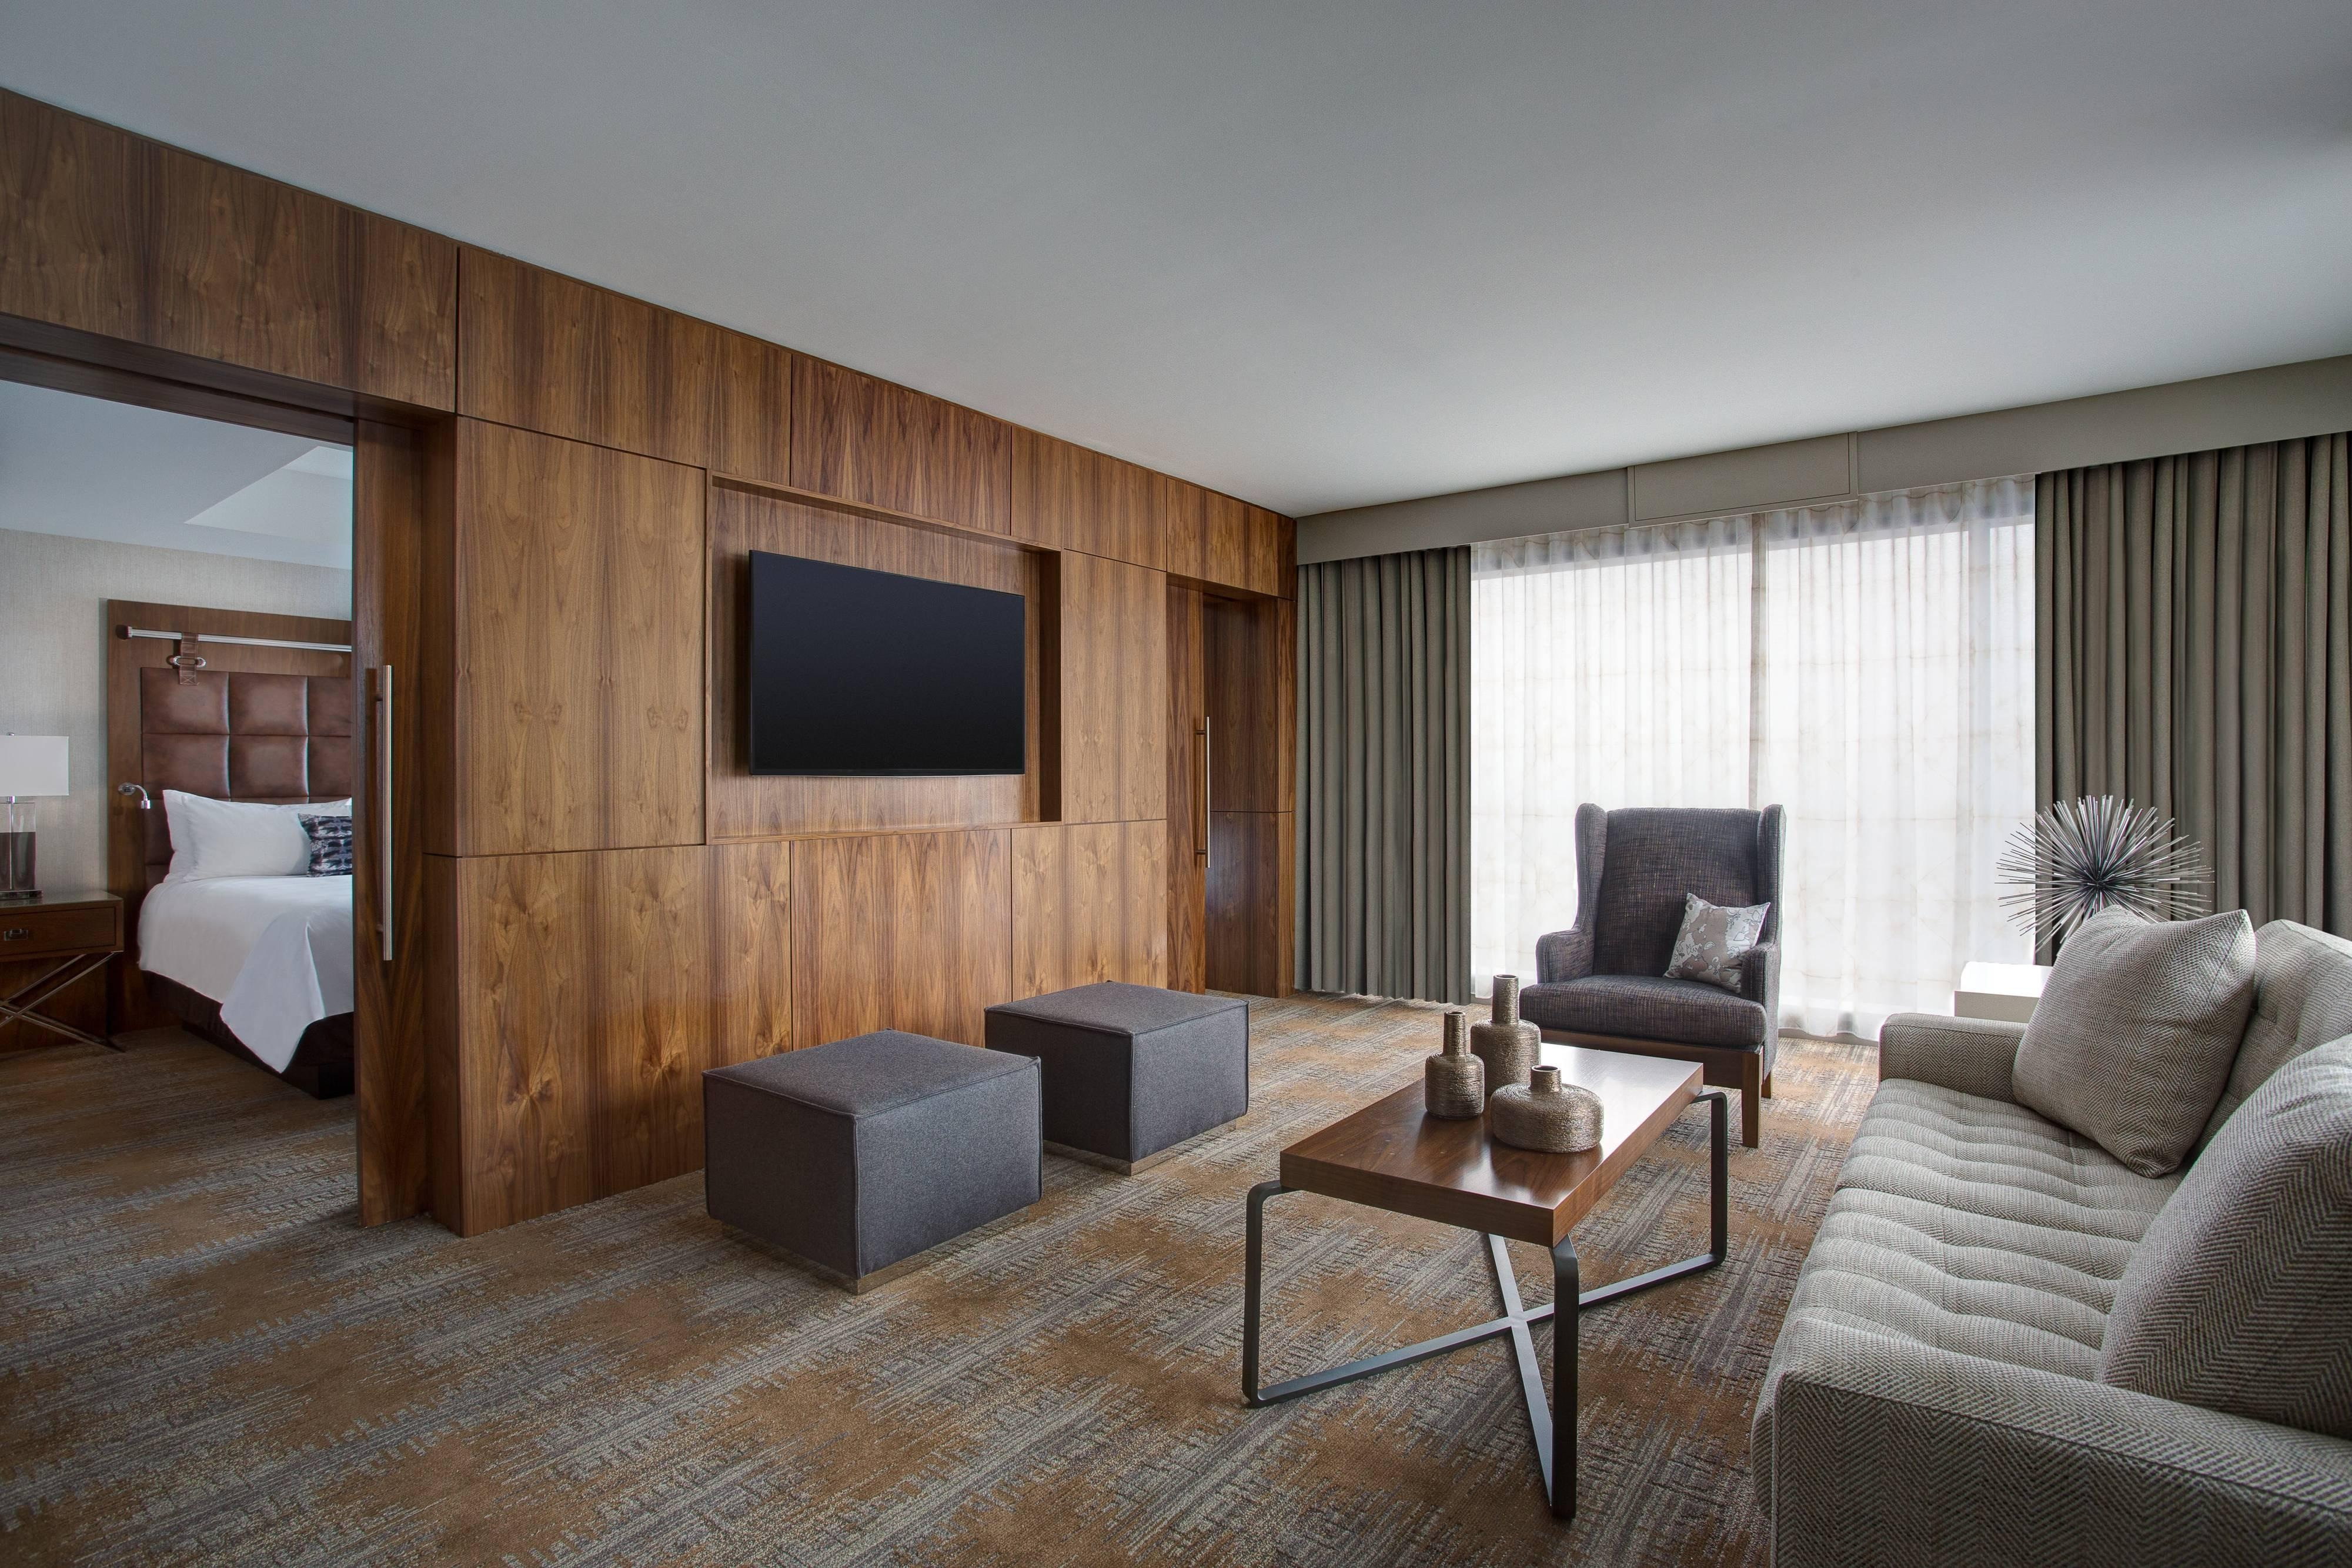 Luxury Hotel Rooms and Suites in Austin TX